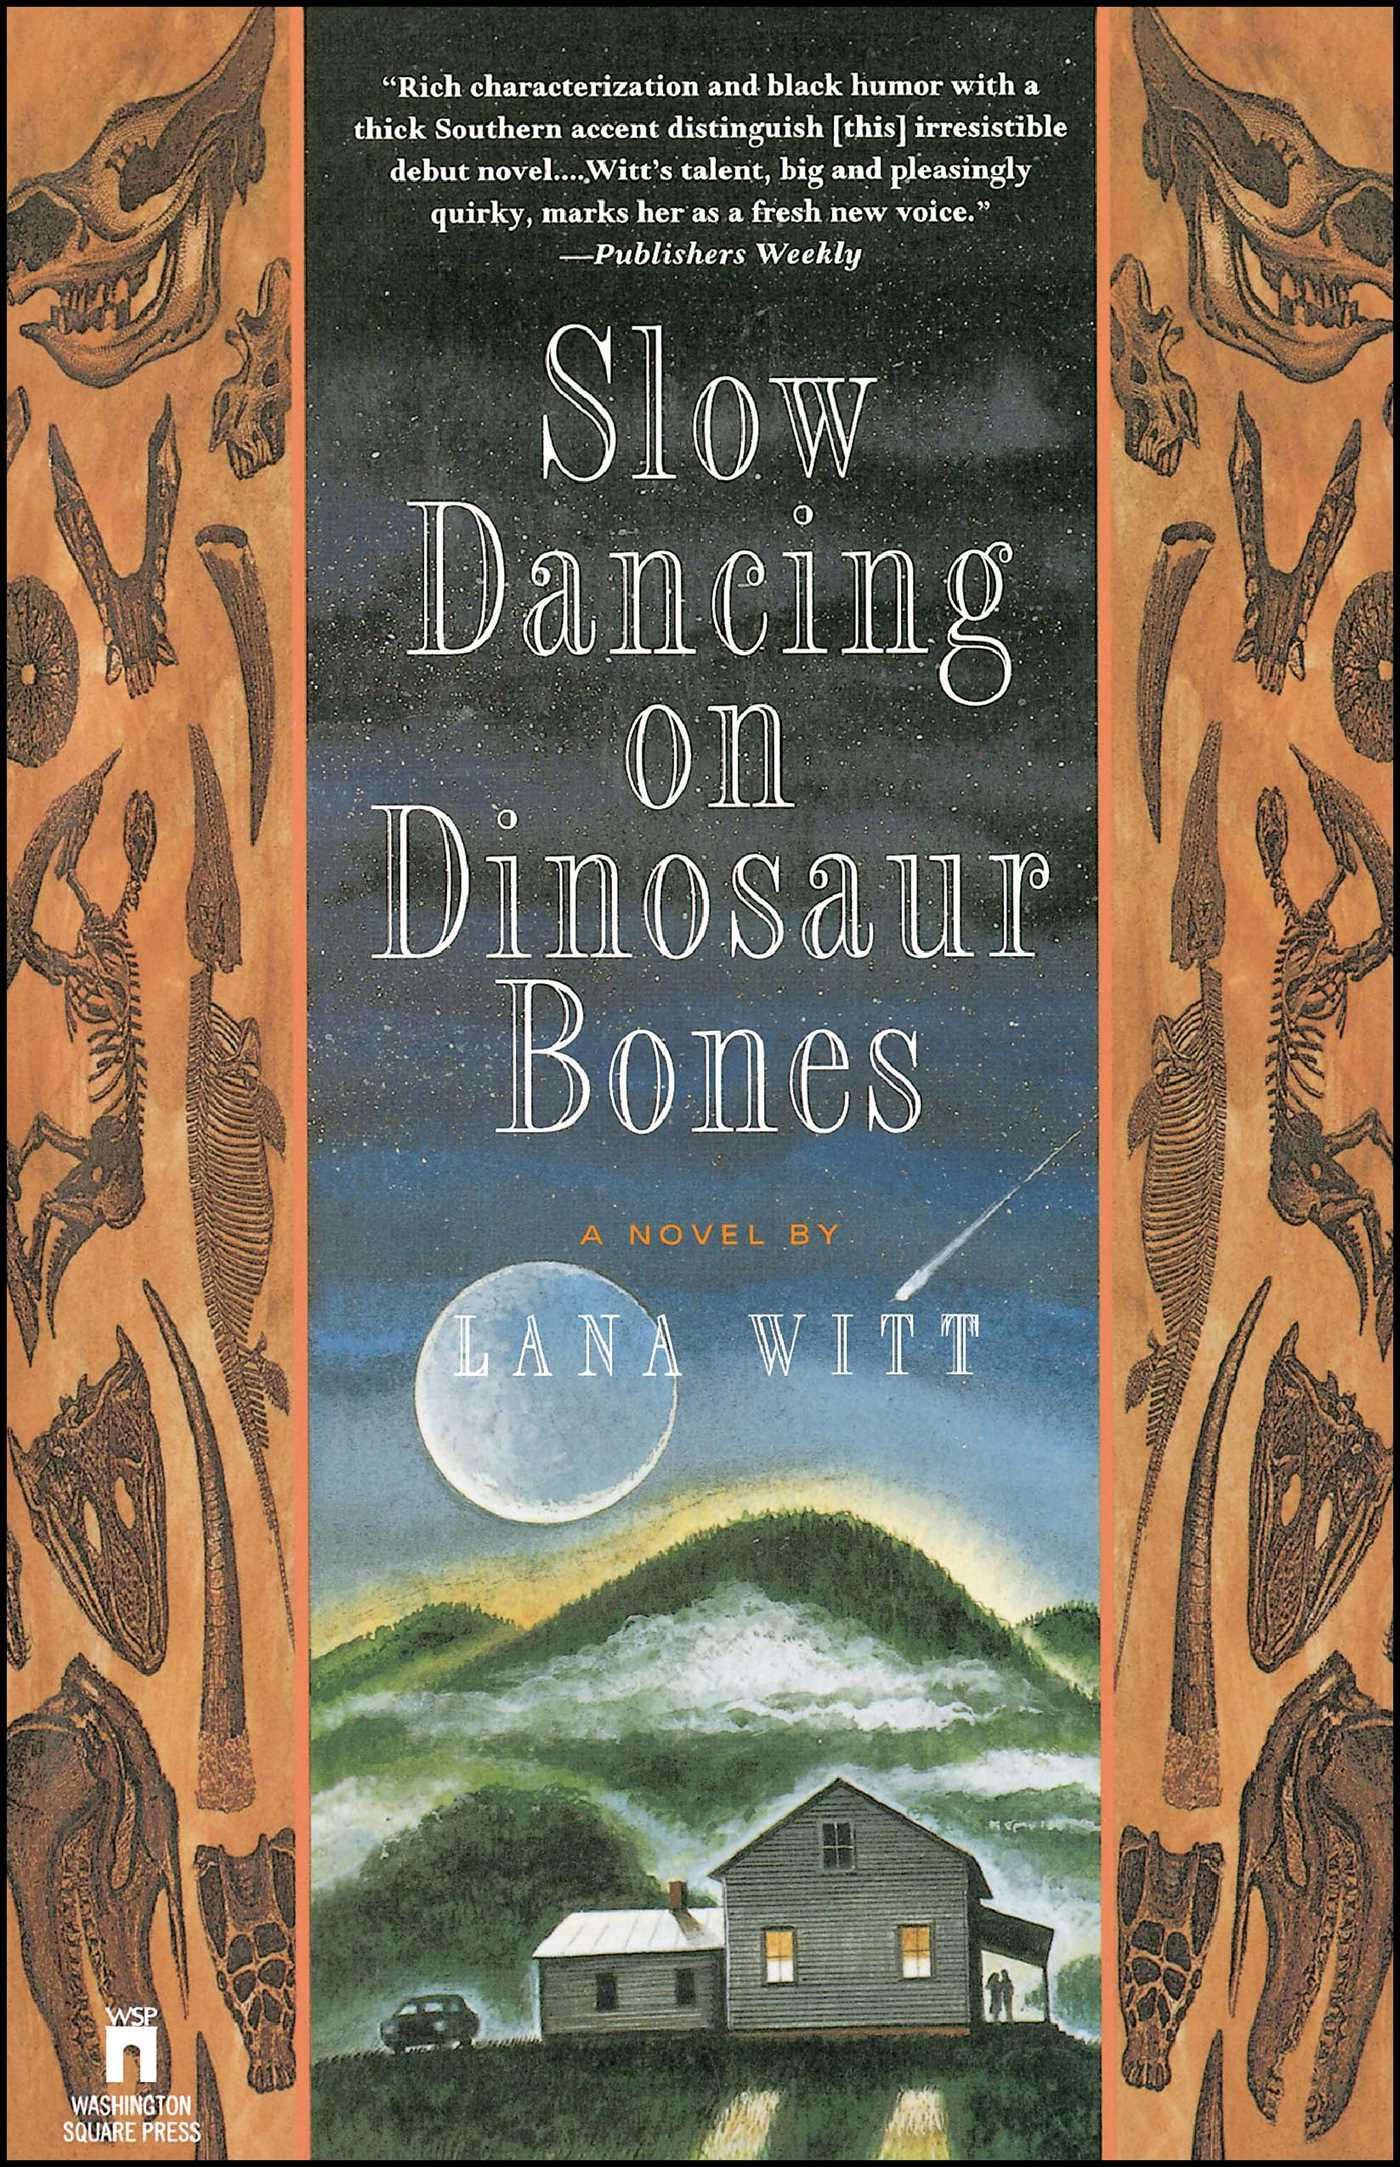 Slow dancing on dinosaur bones 9780671891220 hr